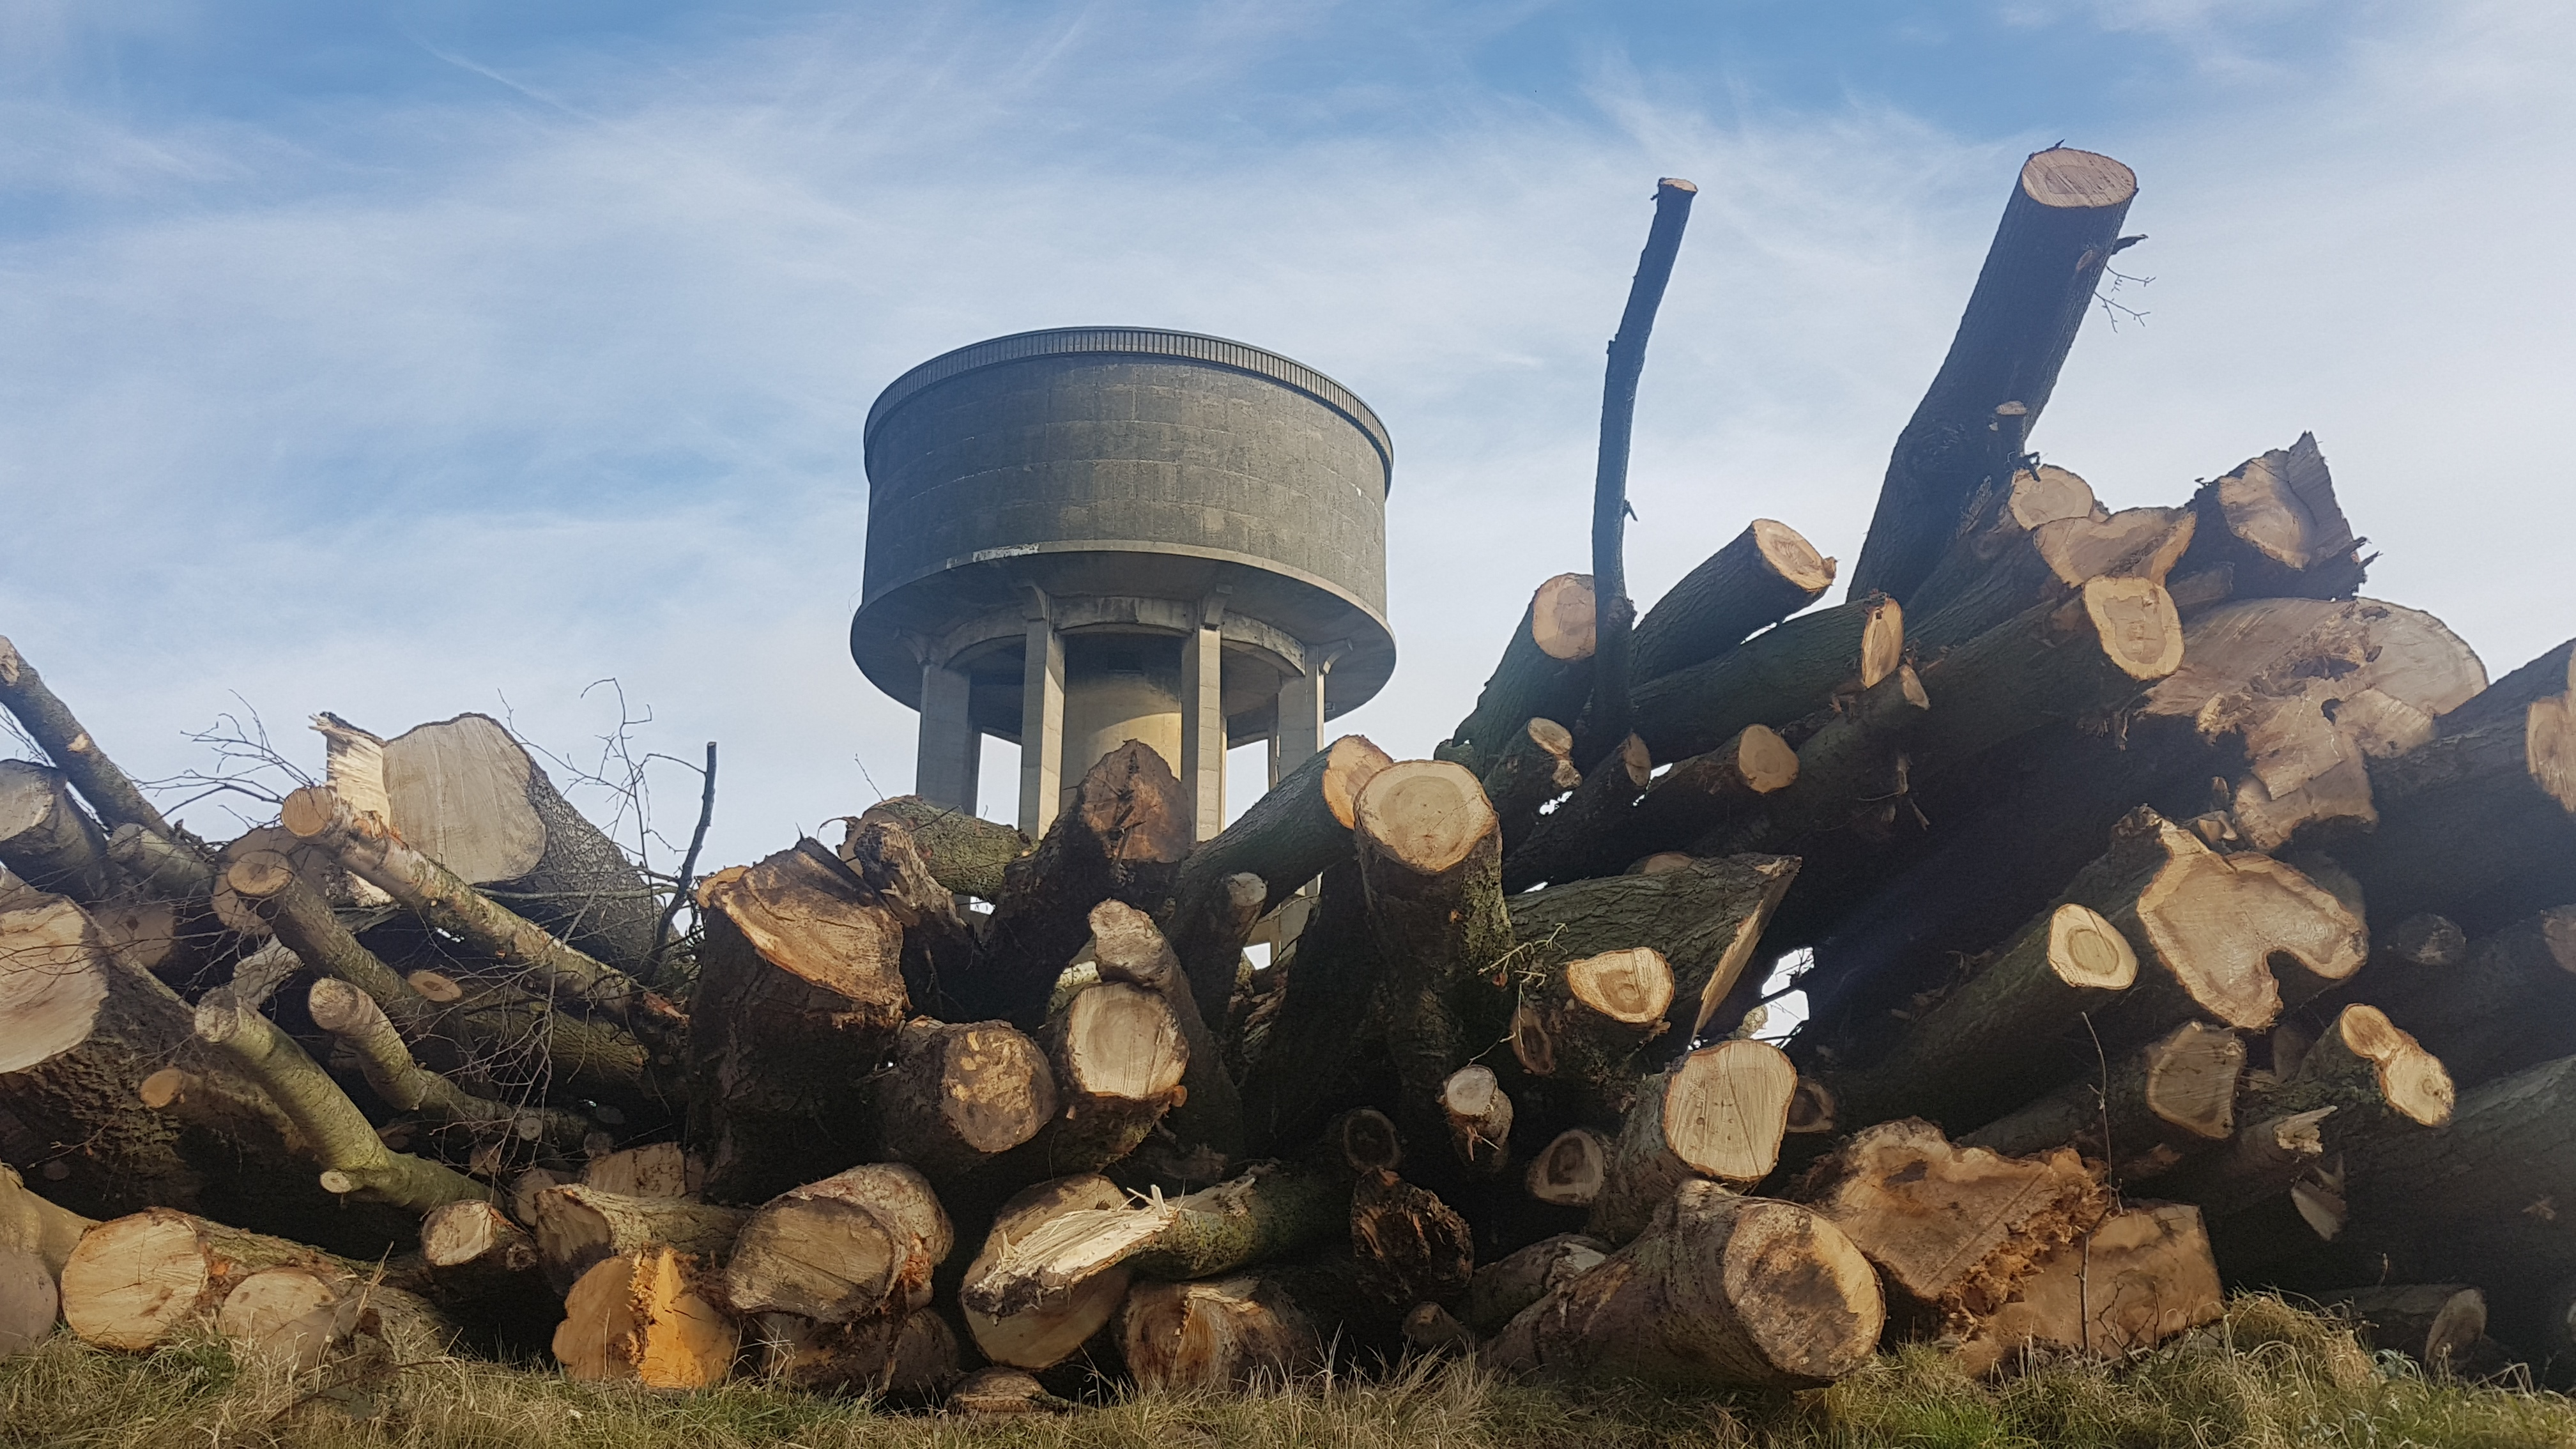 Hundreds of trees have been felled at the site of the old Greaves Hall Hospital to make way for 128 dwellings.    Contractors working for Seddon Homes have started to clear the land that will also see the demolition of the site's iconic water tower, too.    A local resident told Qlocal: